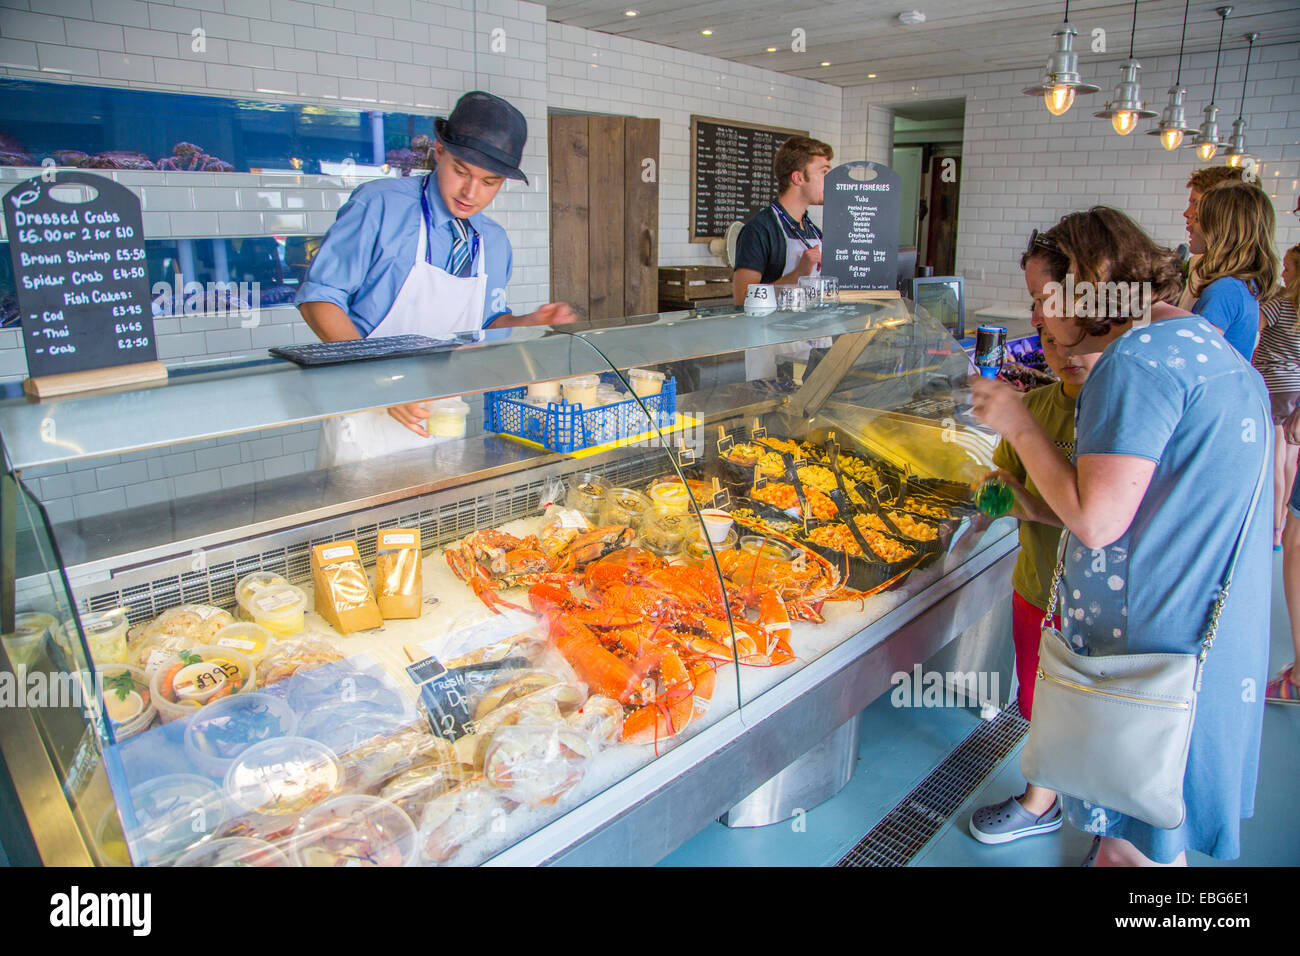 An Interior view of staff serving customers at Stein's Fisheries fresh fish counter Padstow Cornwall England - Stock Image